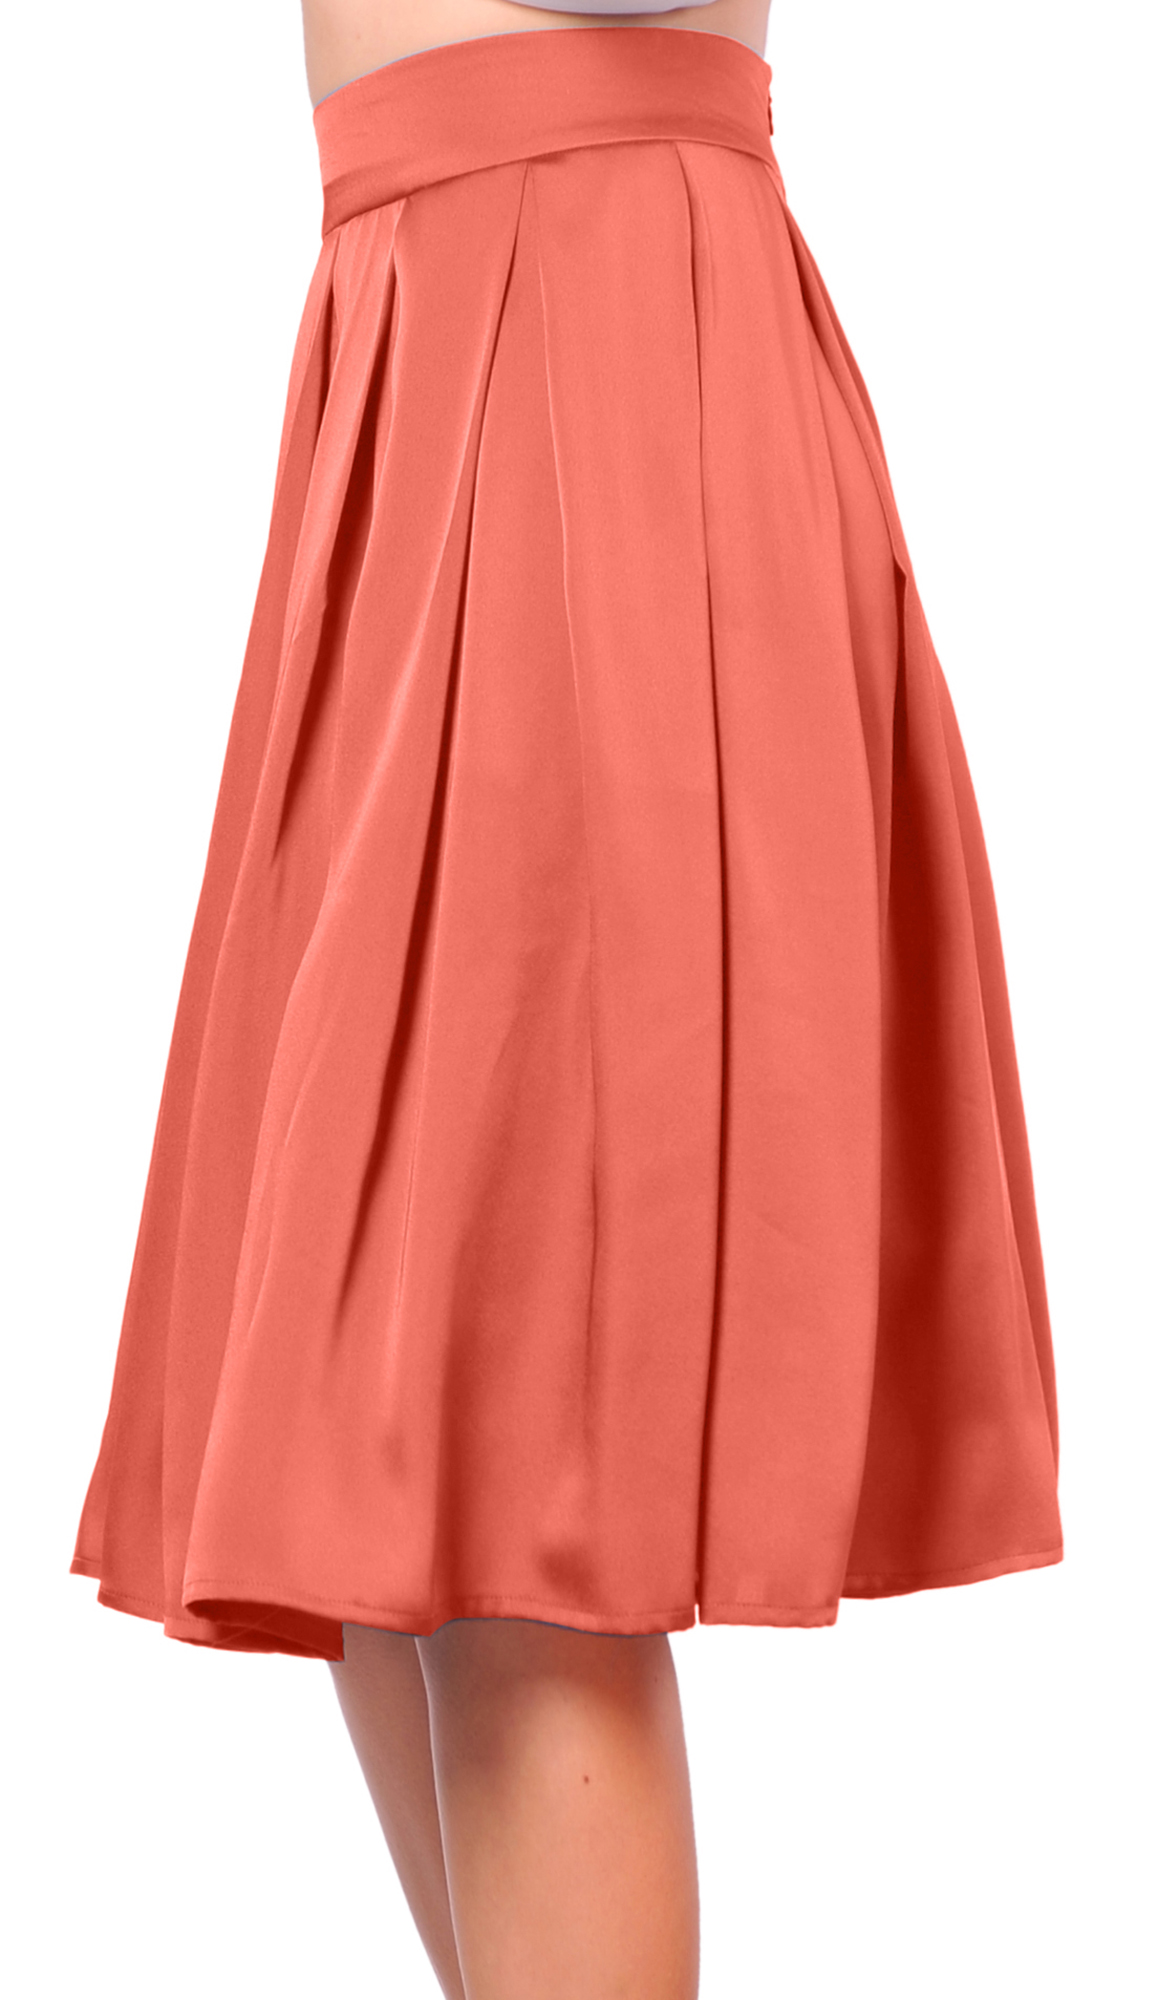 Elegant Women Ladies ALine High Waist Knee Length Short Dress Pleated Plain